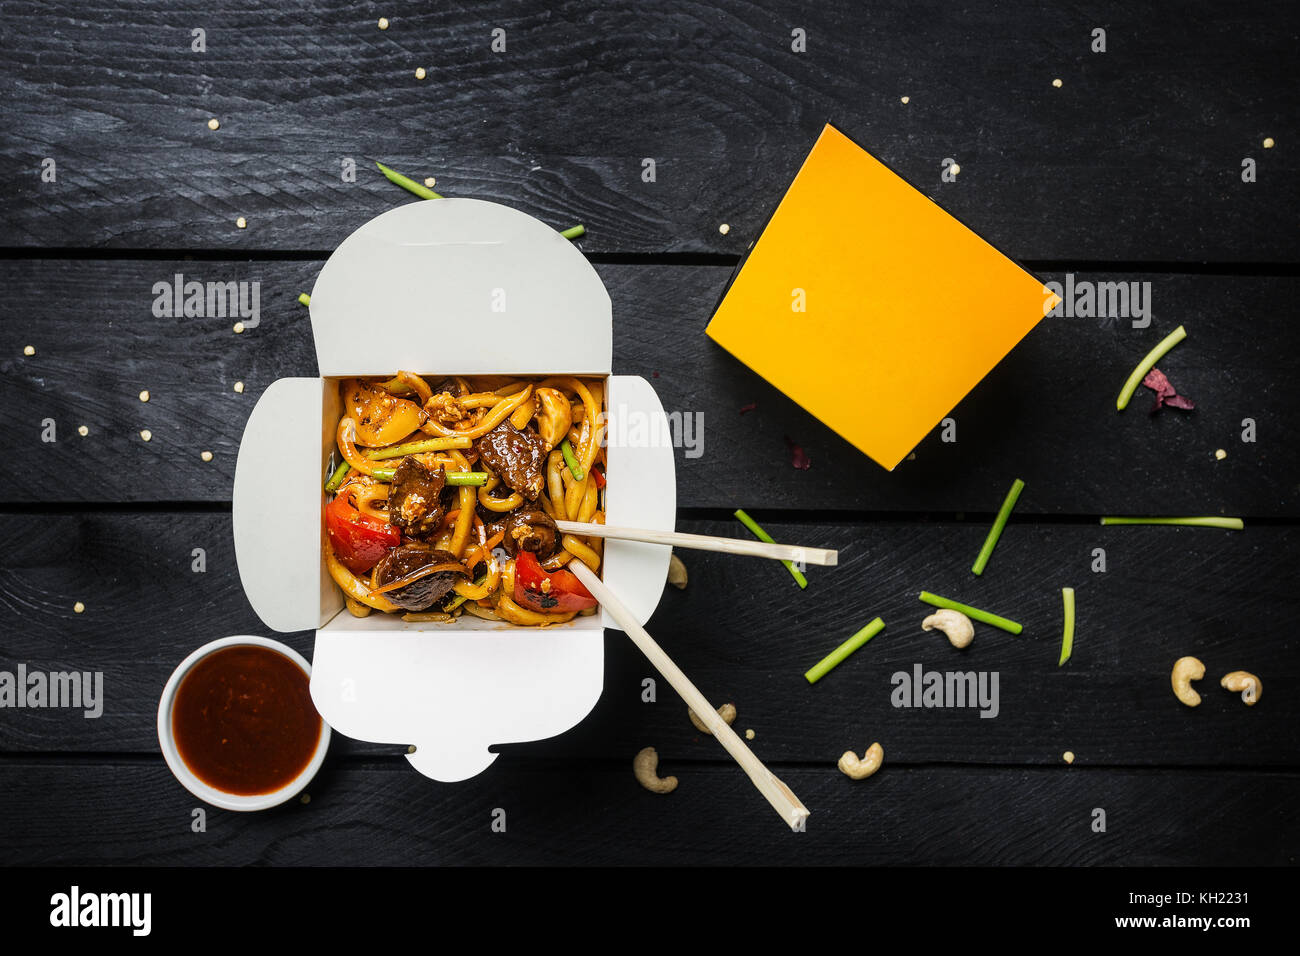 Udon stir fry noodles with meat and vegetables in a box on black background. With chopsticks and sauce. Top view. Stock Photo